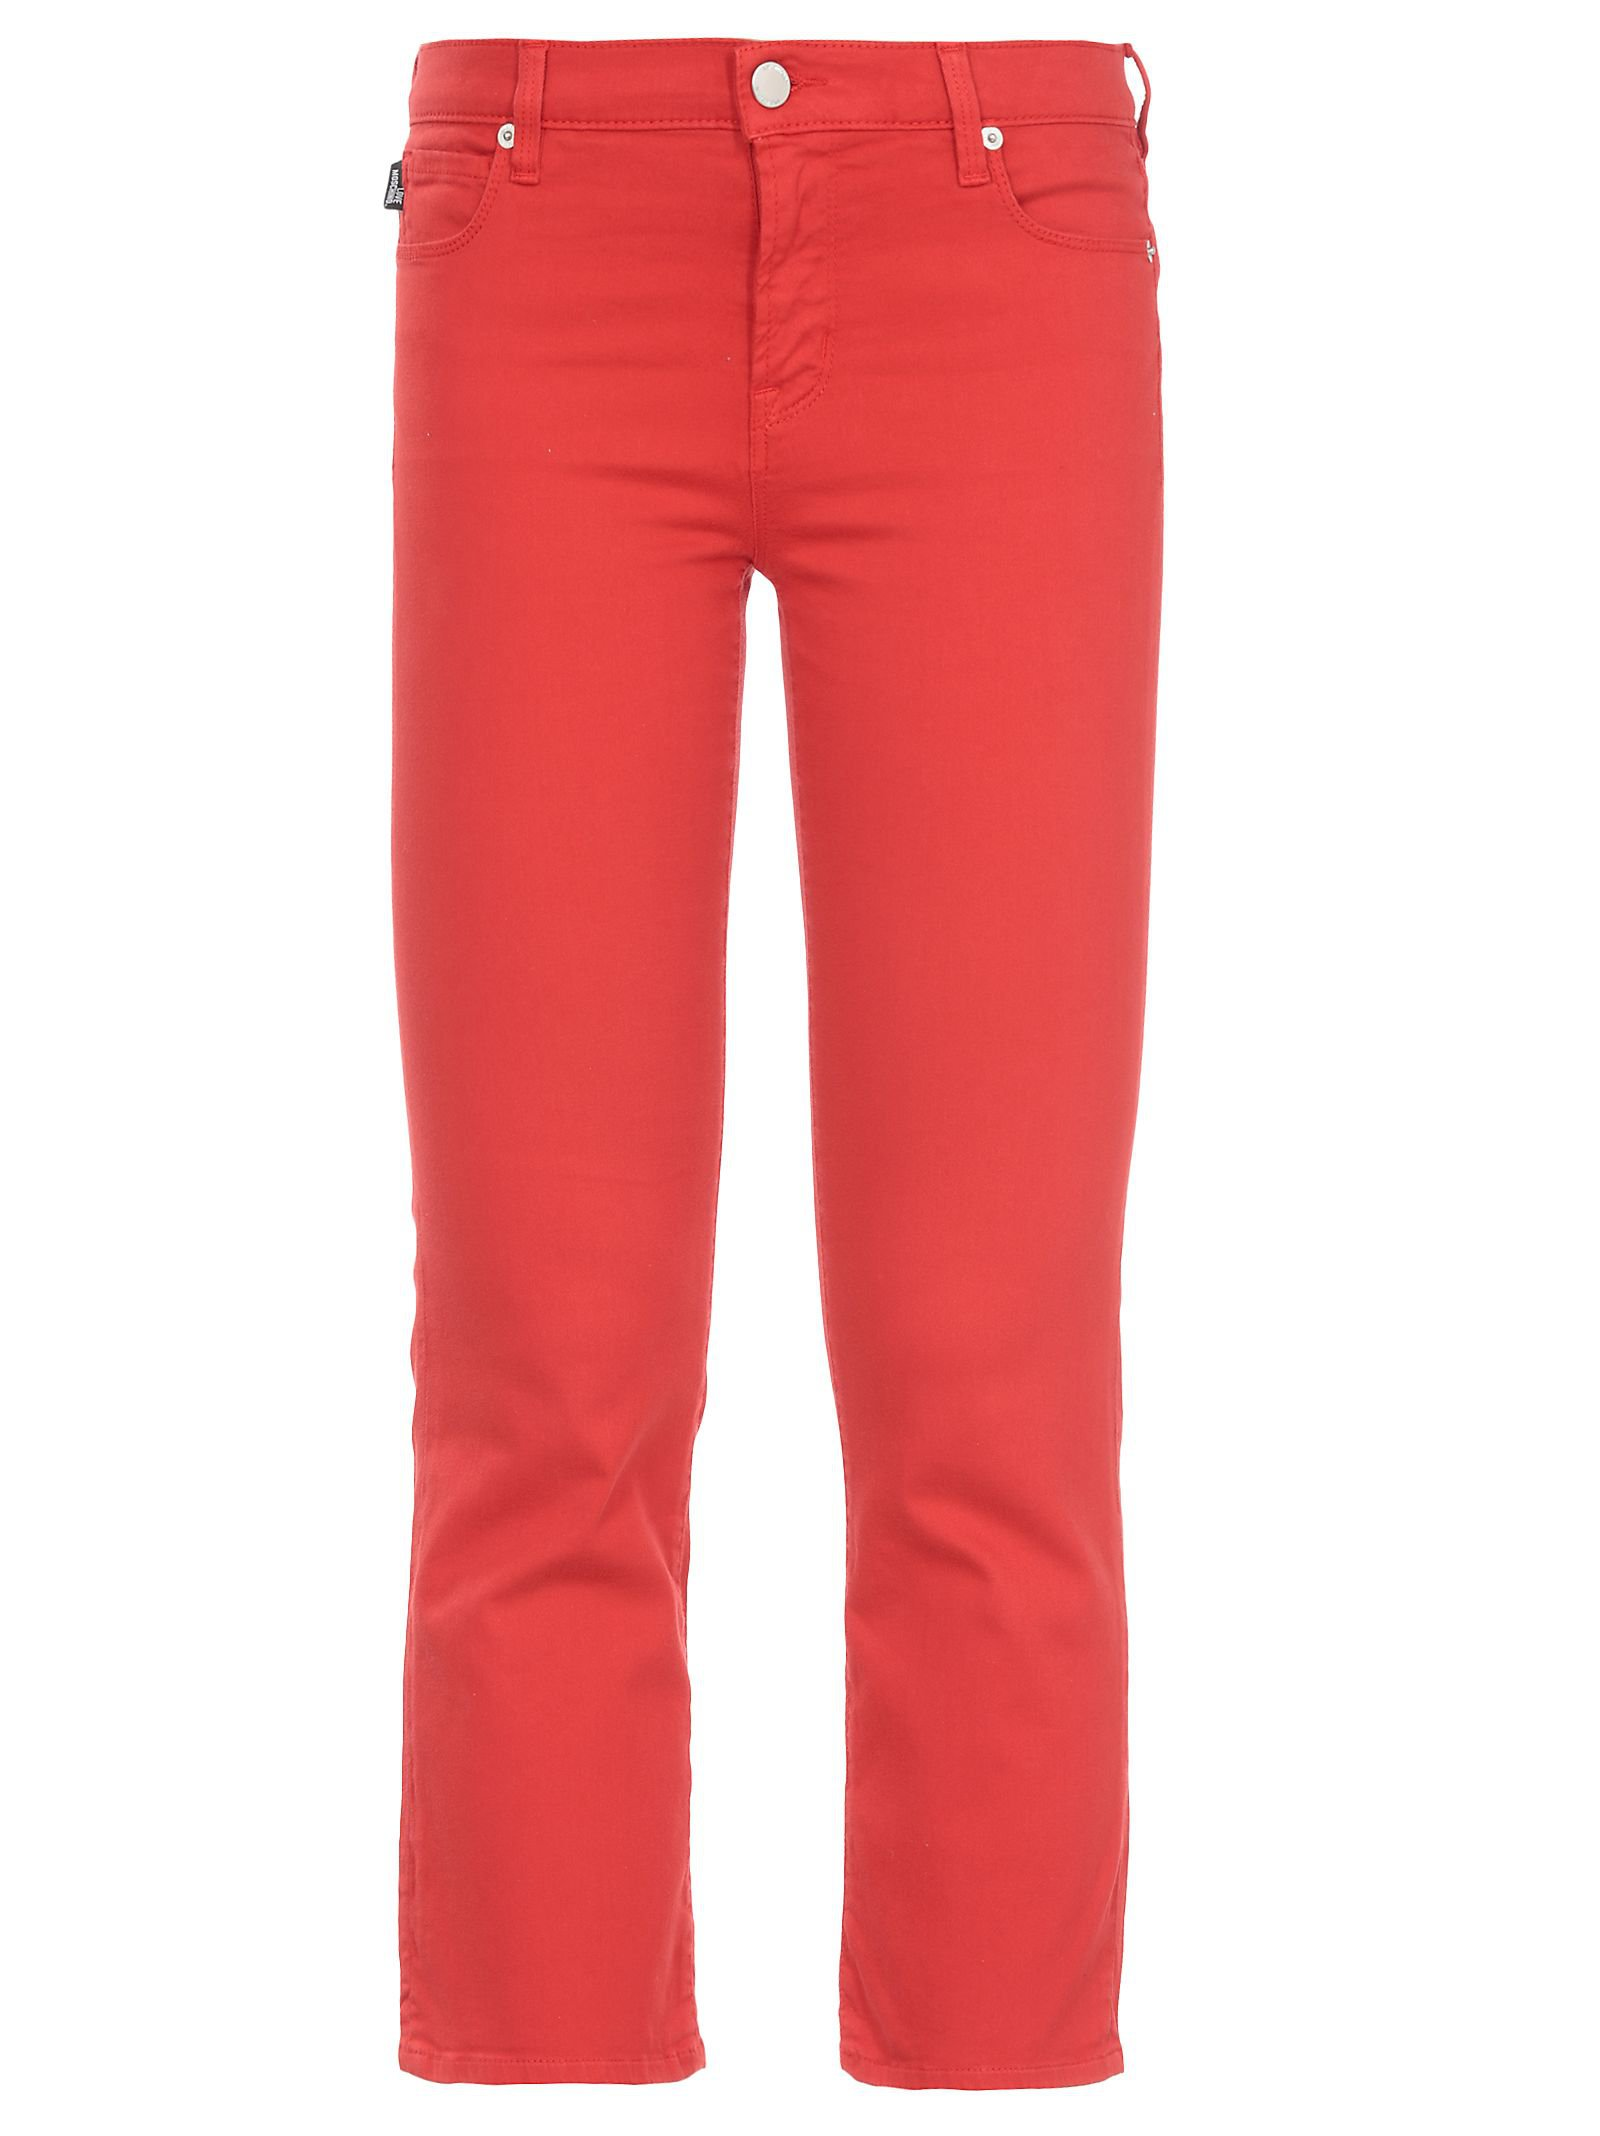 Love Moschino Cropped Jeans